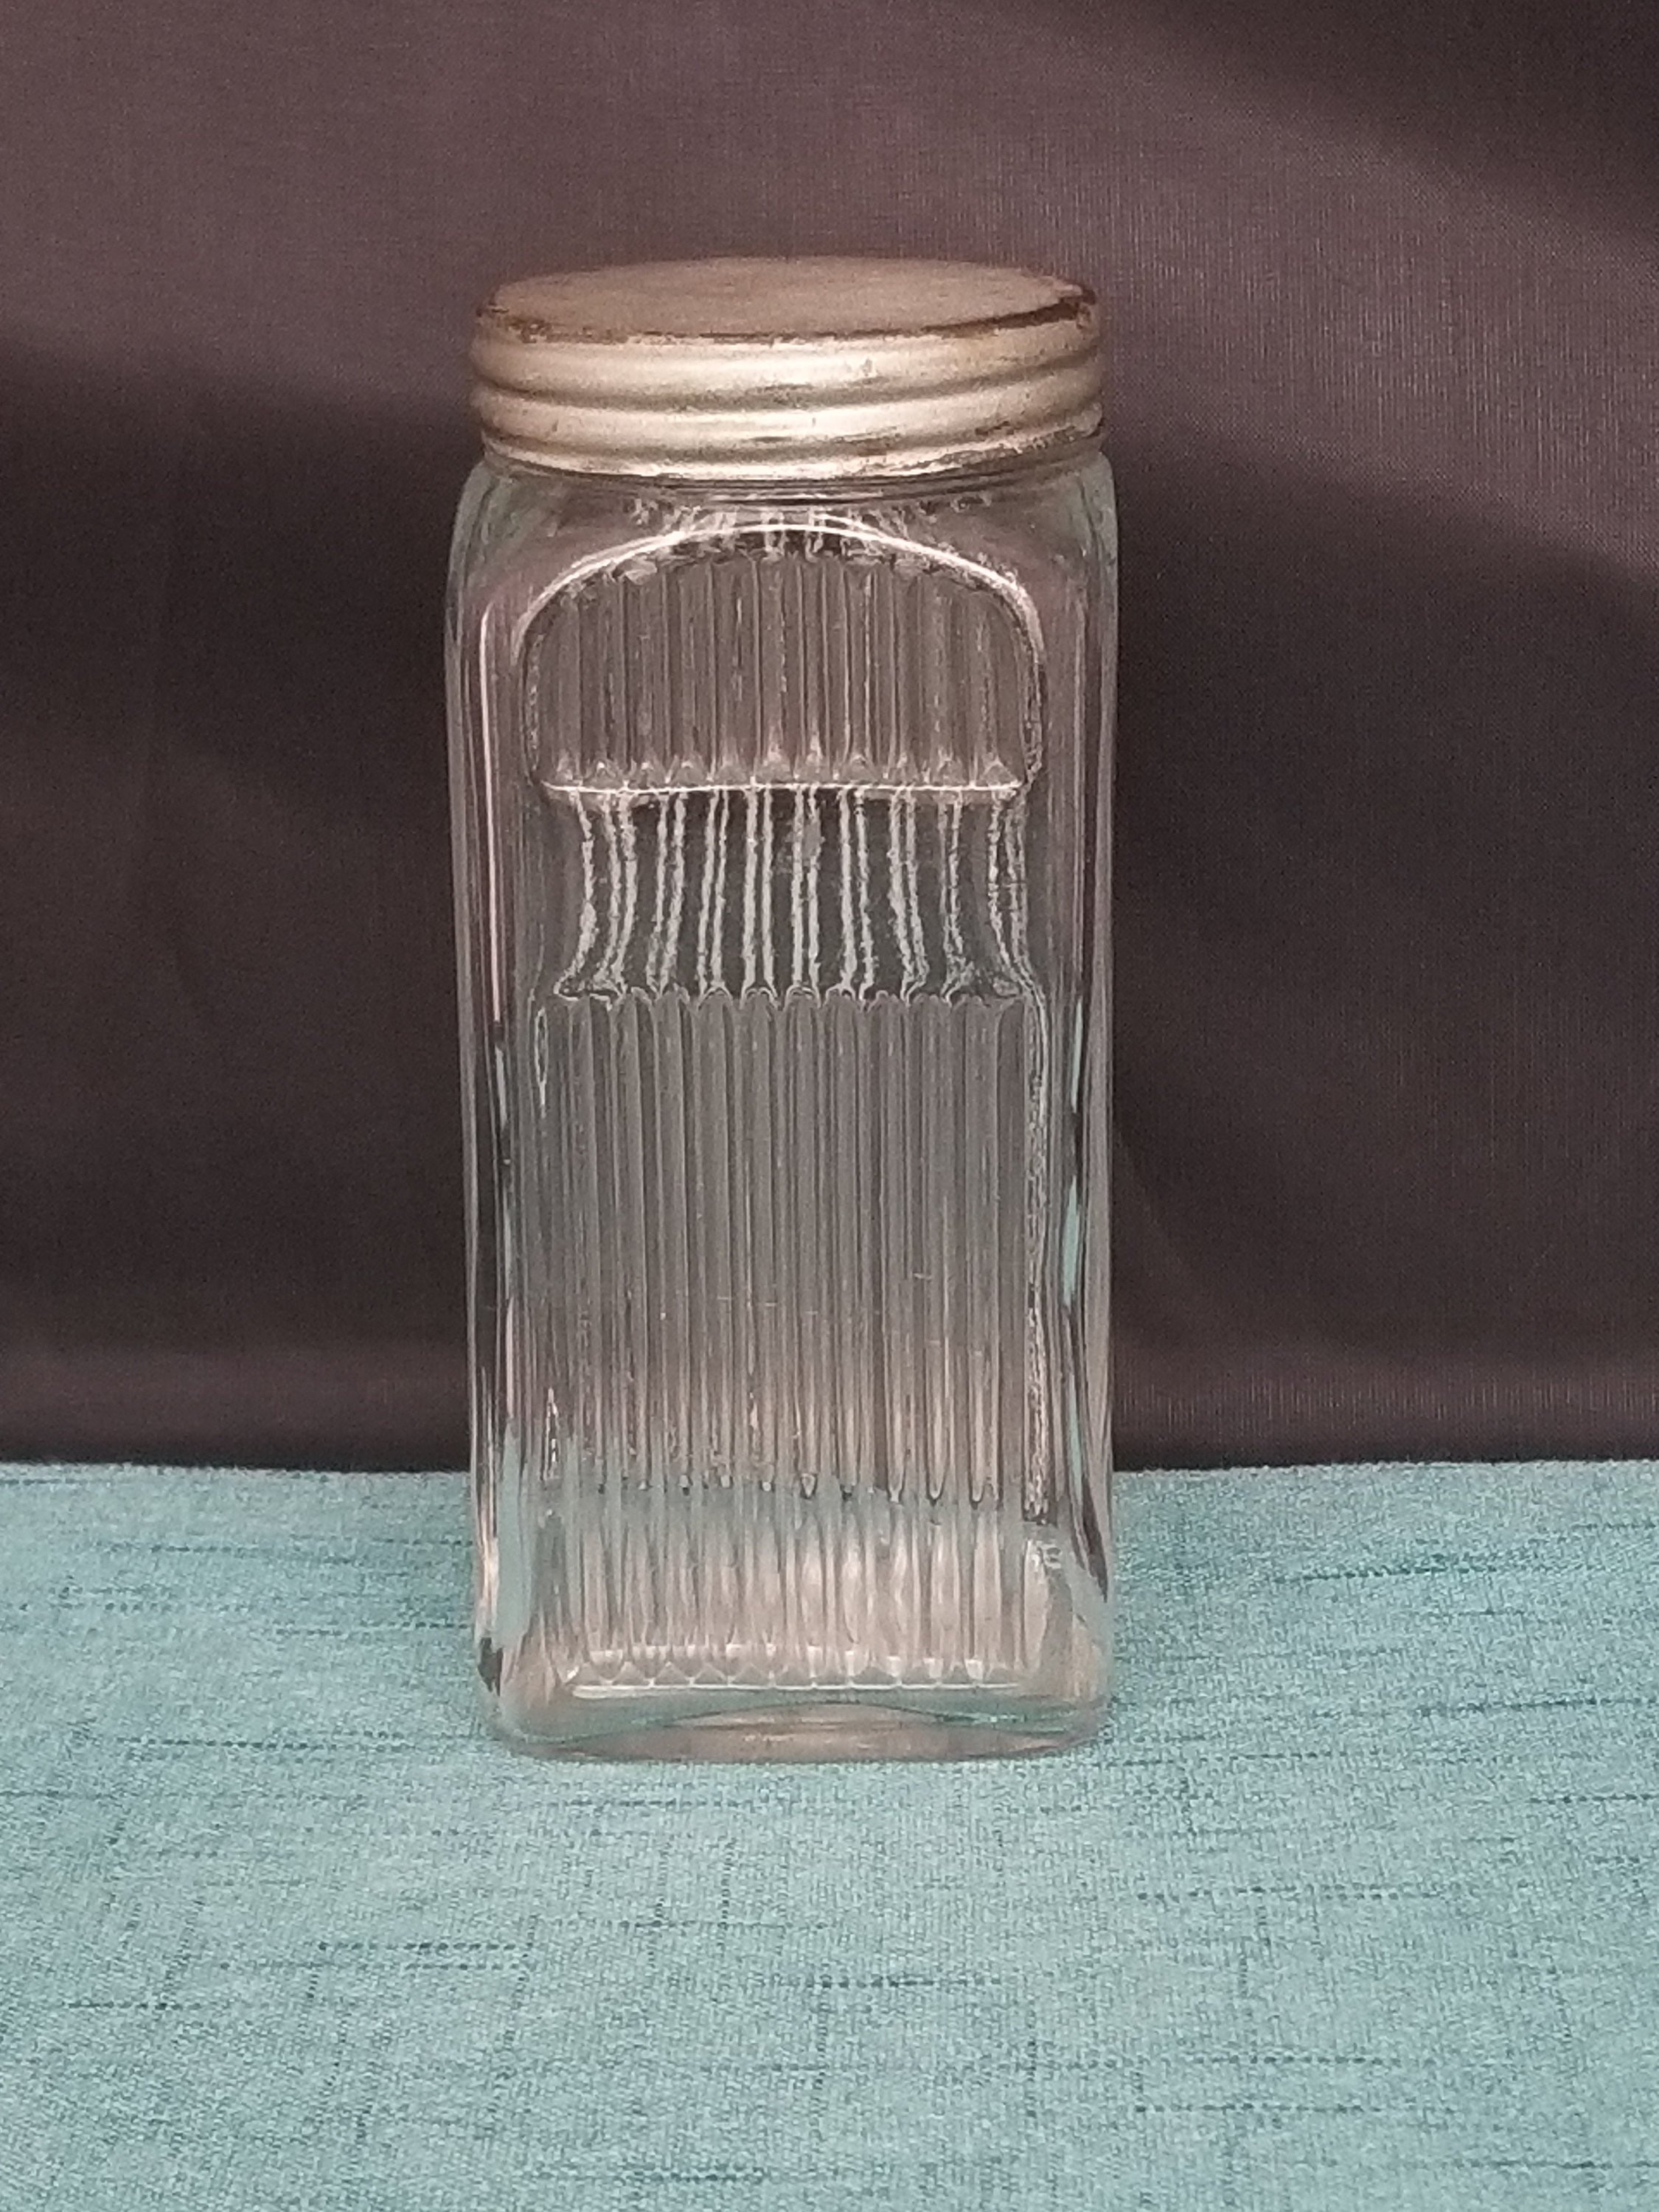 plastic bubble bowl vases of 1920s hoosier cabinet napenee spice jar with aluminum lid etsy inside dc29fc294c28ezoom